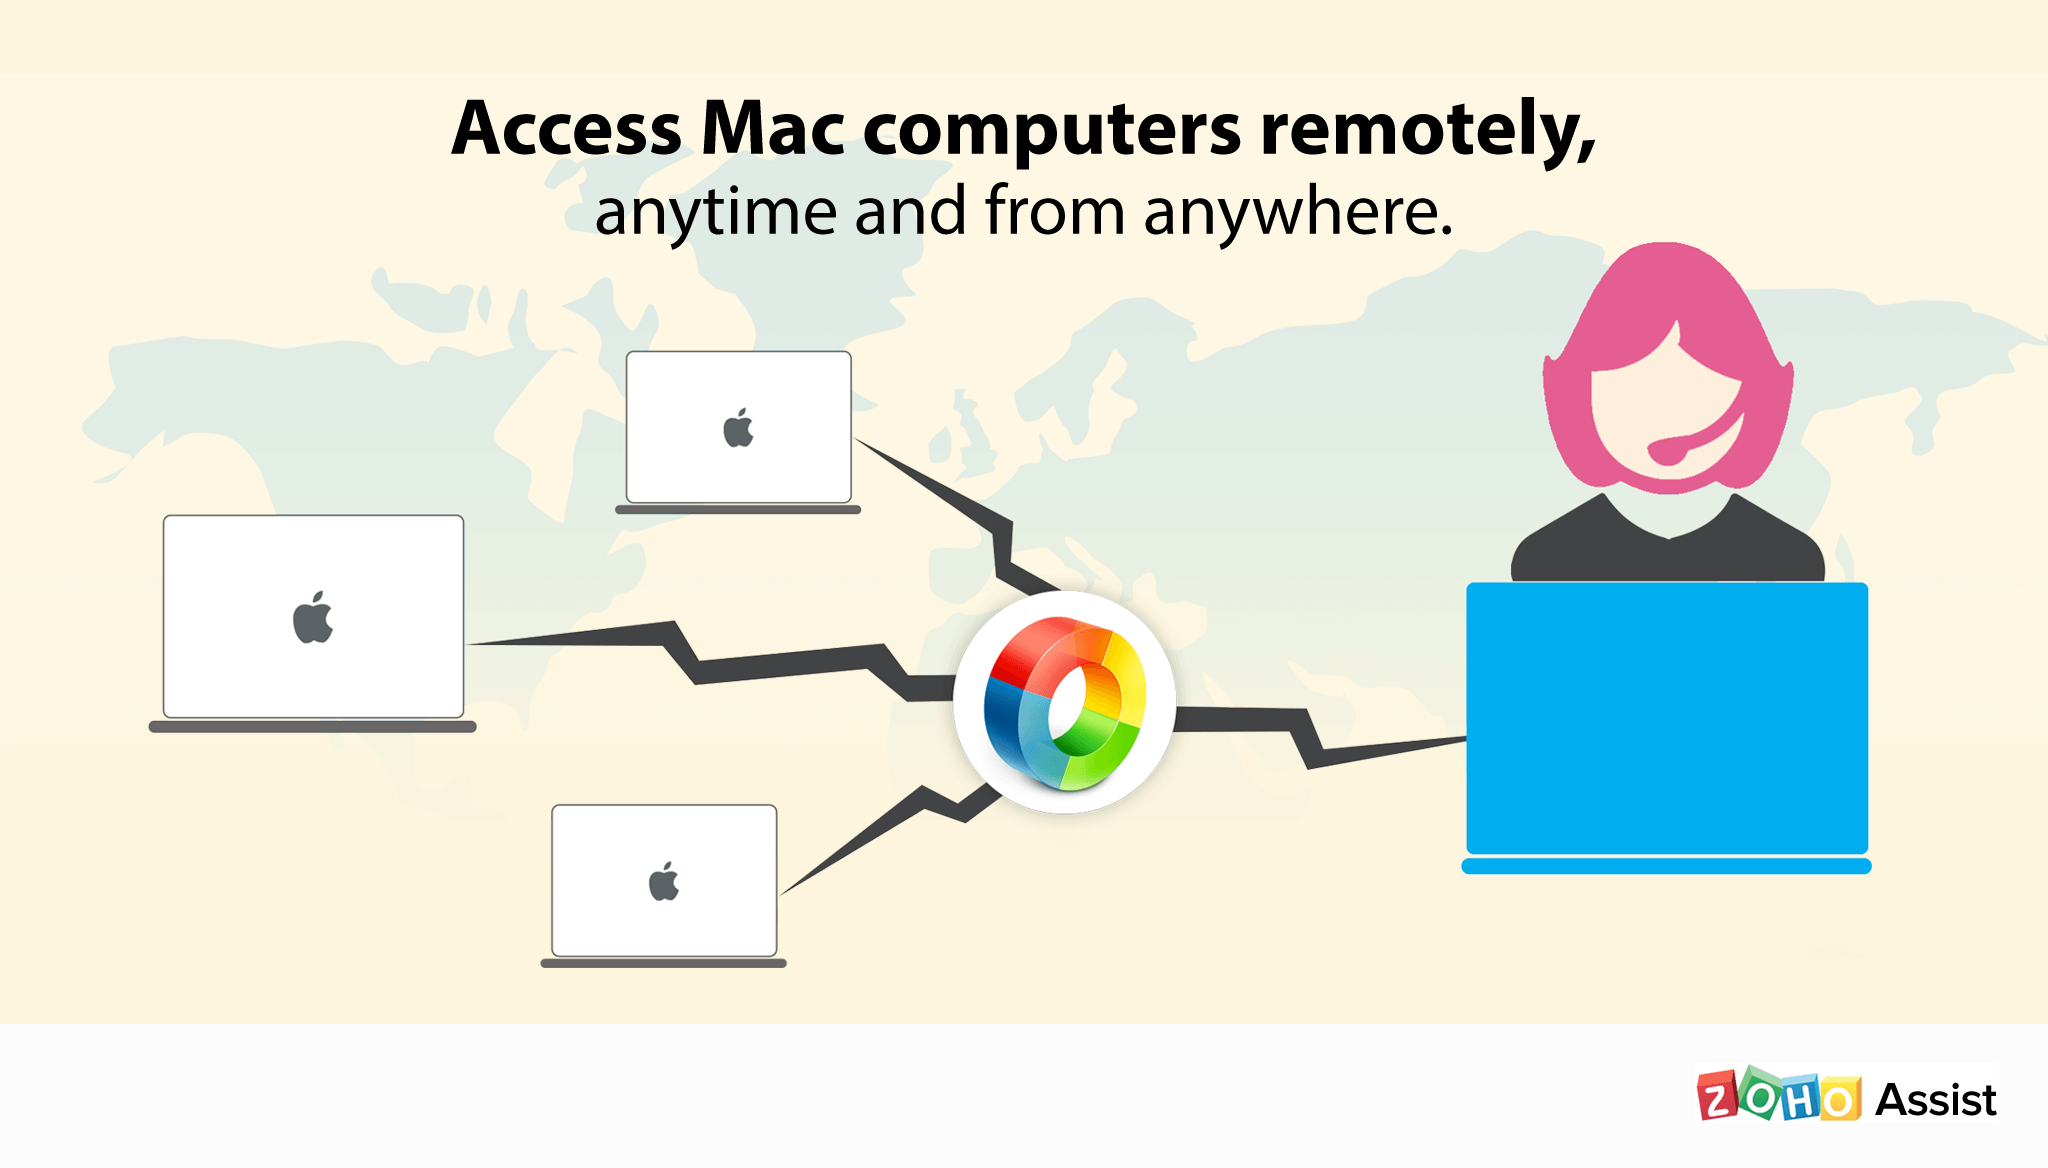 Access Mac computers remotely, anytime and from anywhere.